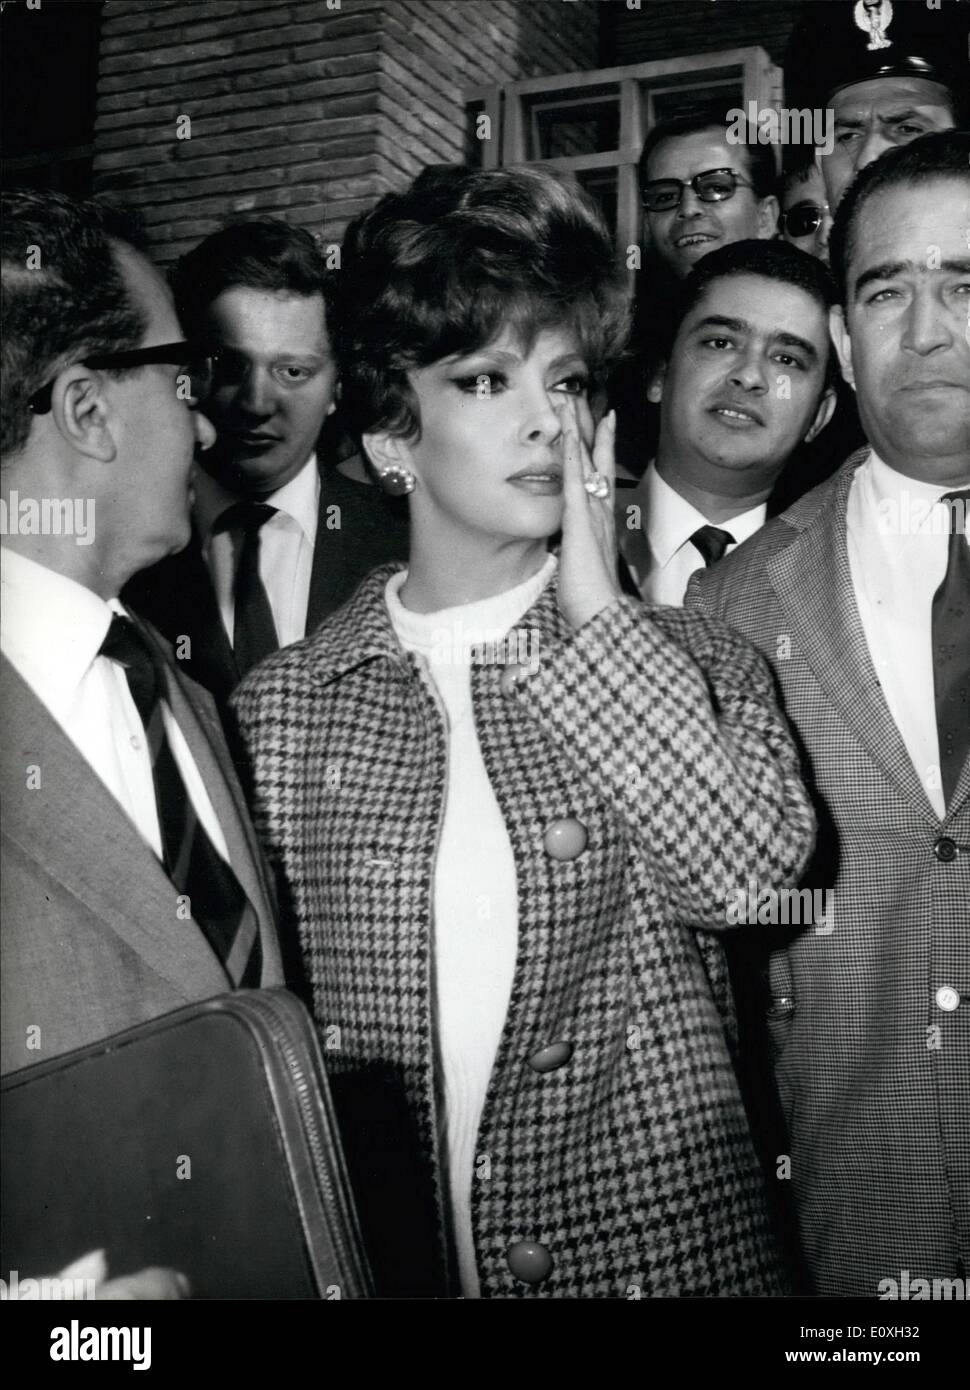 Oct. 10, 1966 - Italian actress Gina Lollobrigida and her Yugoslav-born husband Dr. Milko Skofic appeared today before the president of the civili tribunal in nearby Latina to ask hen to pronounces their separation by Mutual consent. Miss Lollobrigida and Skofic were married 15 years ago. The lovely screen star and the doctor have lived separately for years. Last Jube they separated. After the marriage in 1951. Skofic gave us his medical carrer to become the actress adviser. He is now a publisher of Publishing Home ''Salani'' of Florence - Stock Image